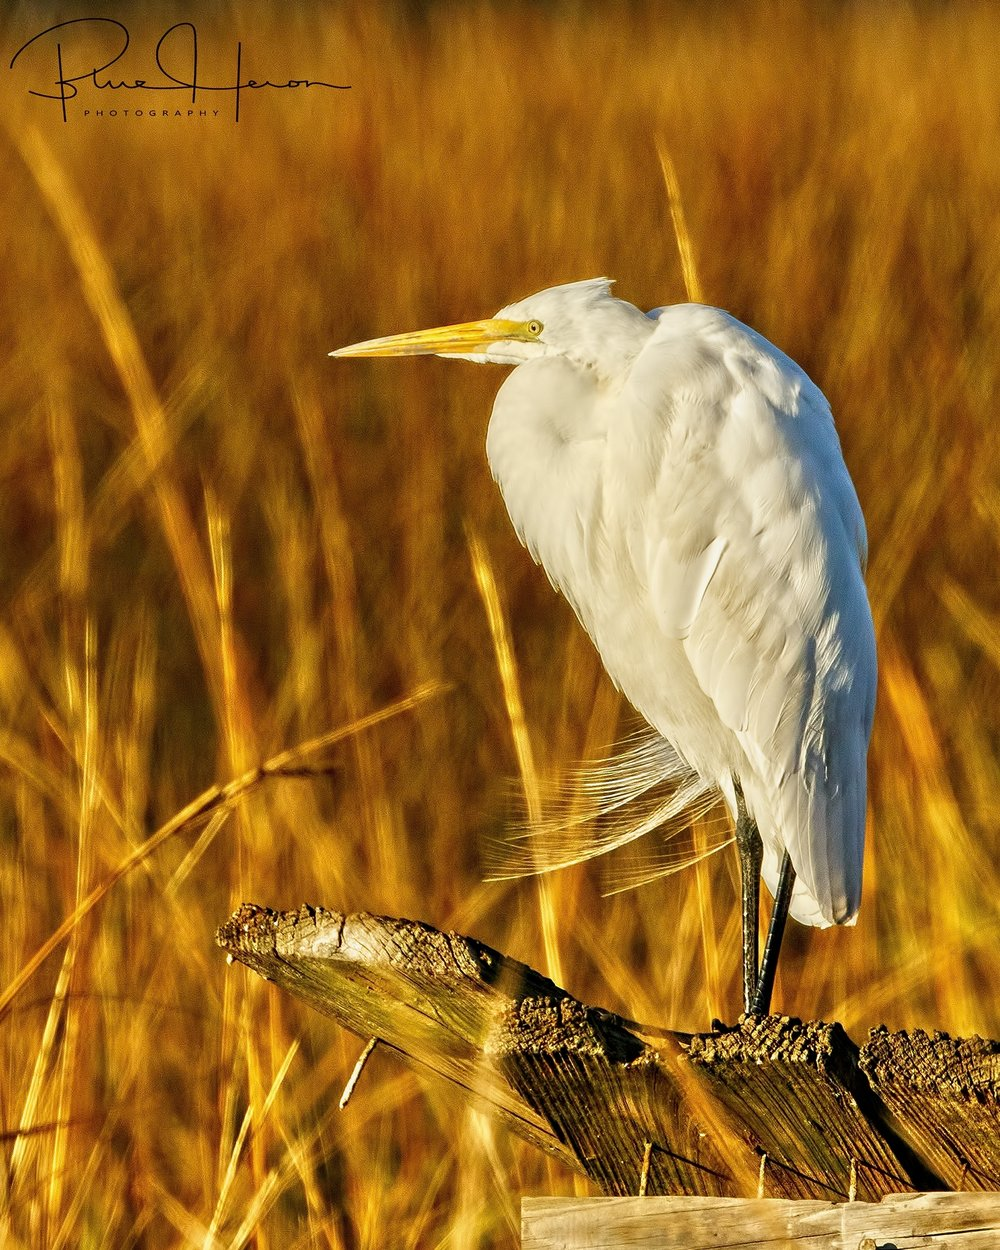 Cold and Gold..Great Egret in the cold golden light of a chilly January morning